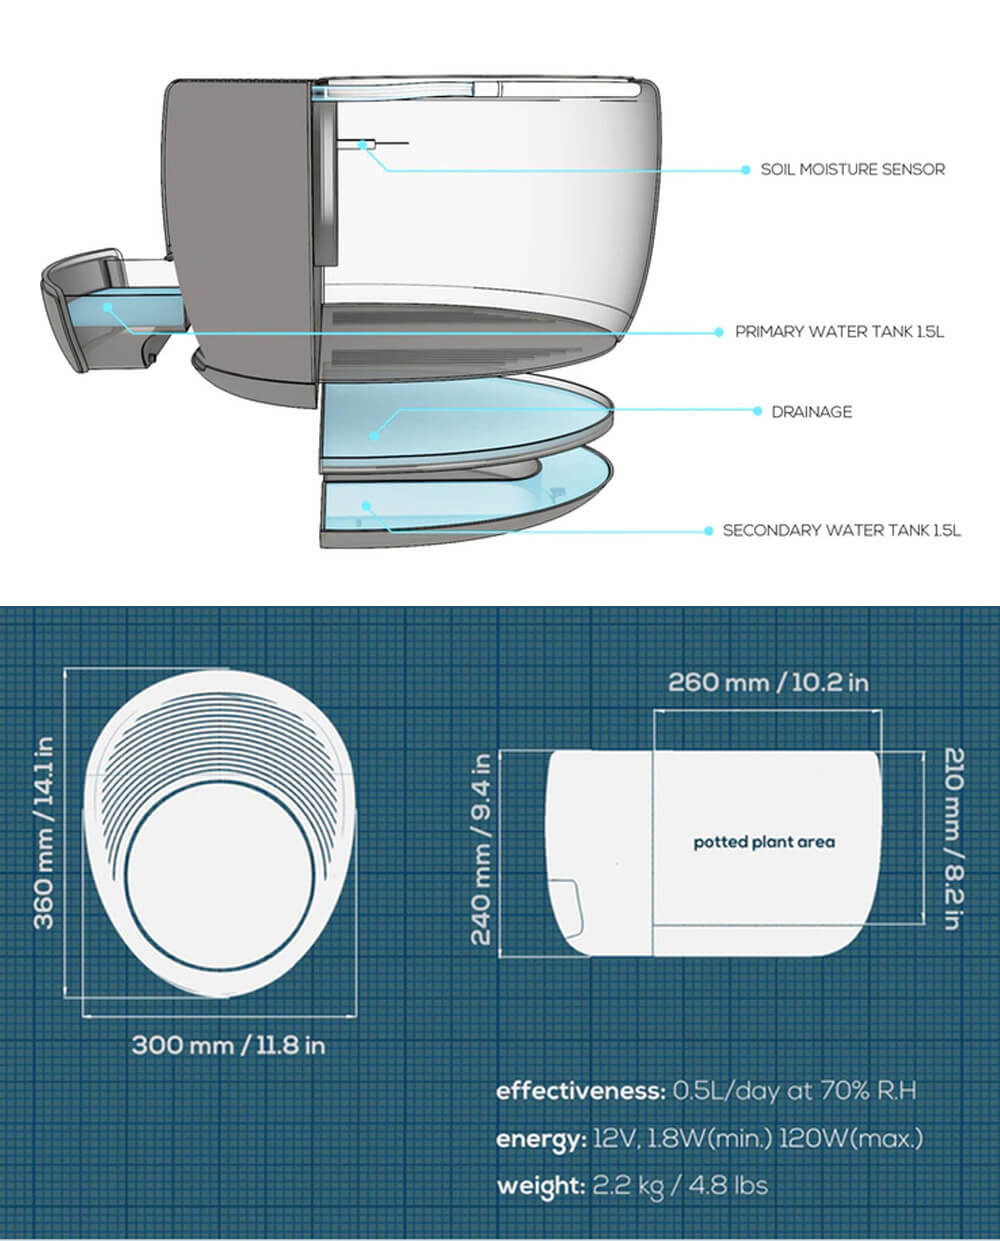 Urbie Air Purifier Technical Details